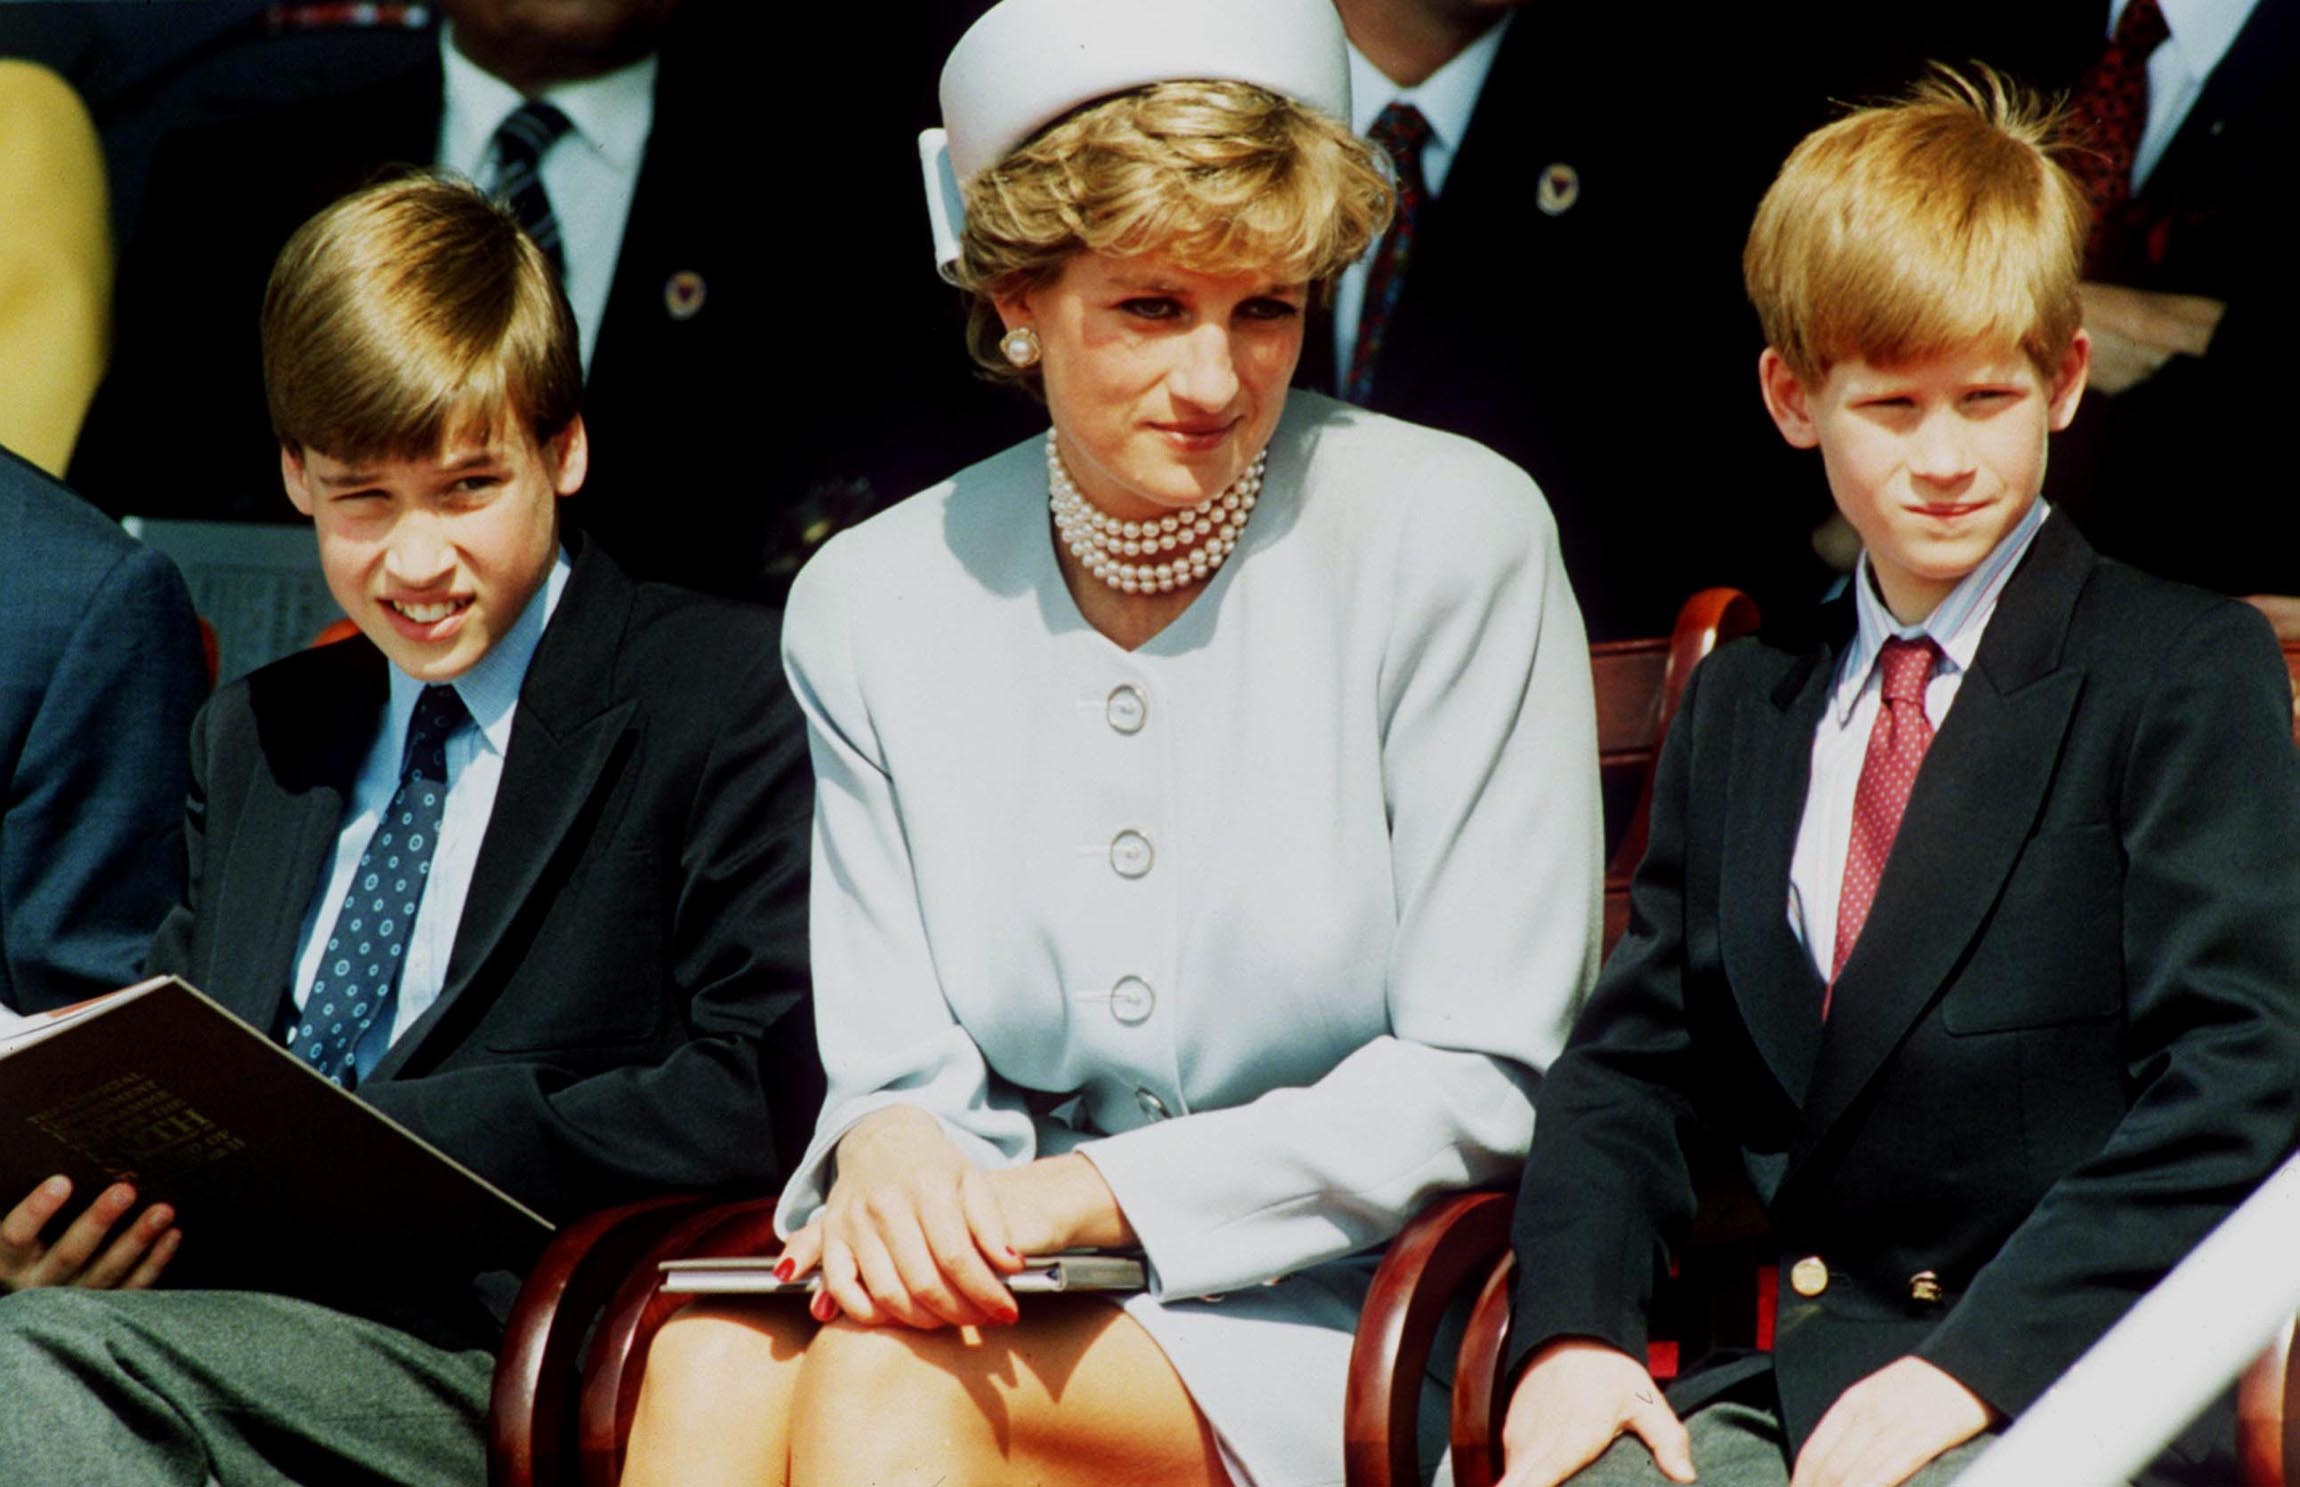 La défunte Princesse Diana, avec le Prince William et le Prince Harry lors d'un événement officiel | Photo : Getty Images